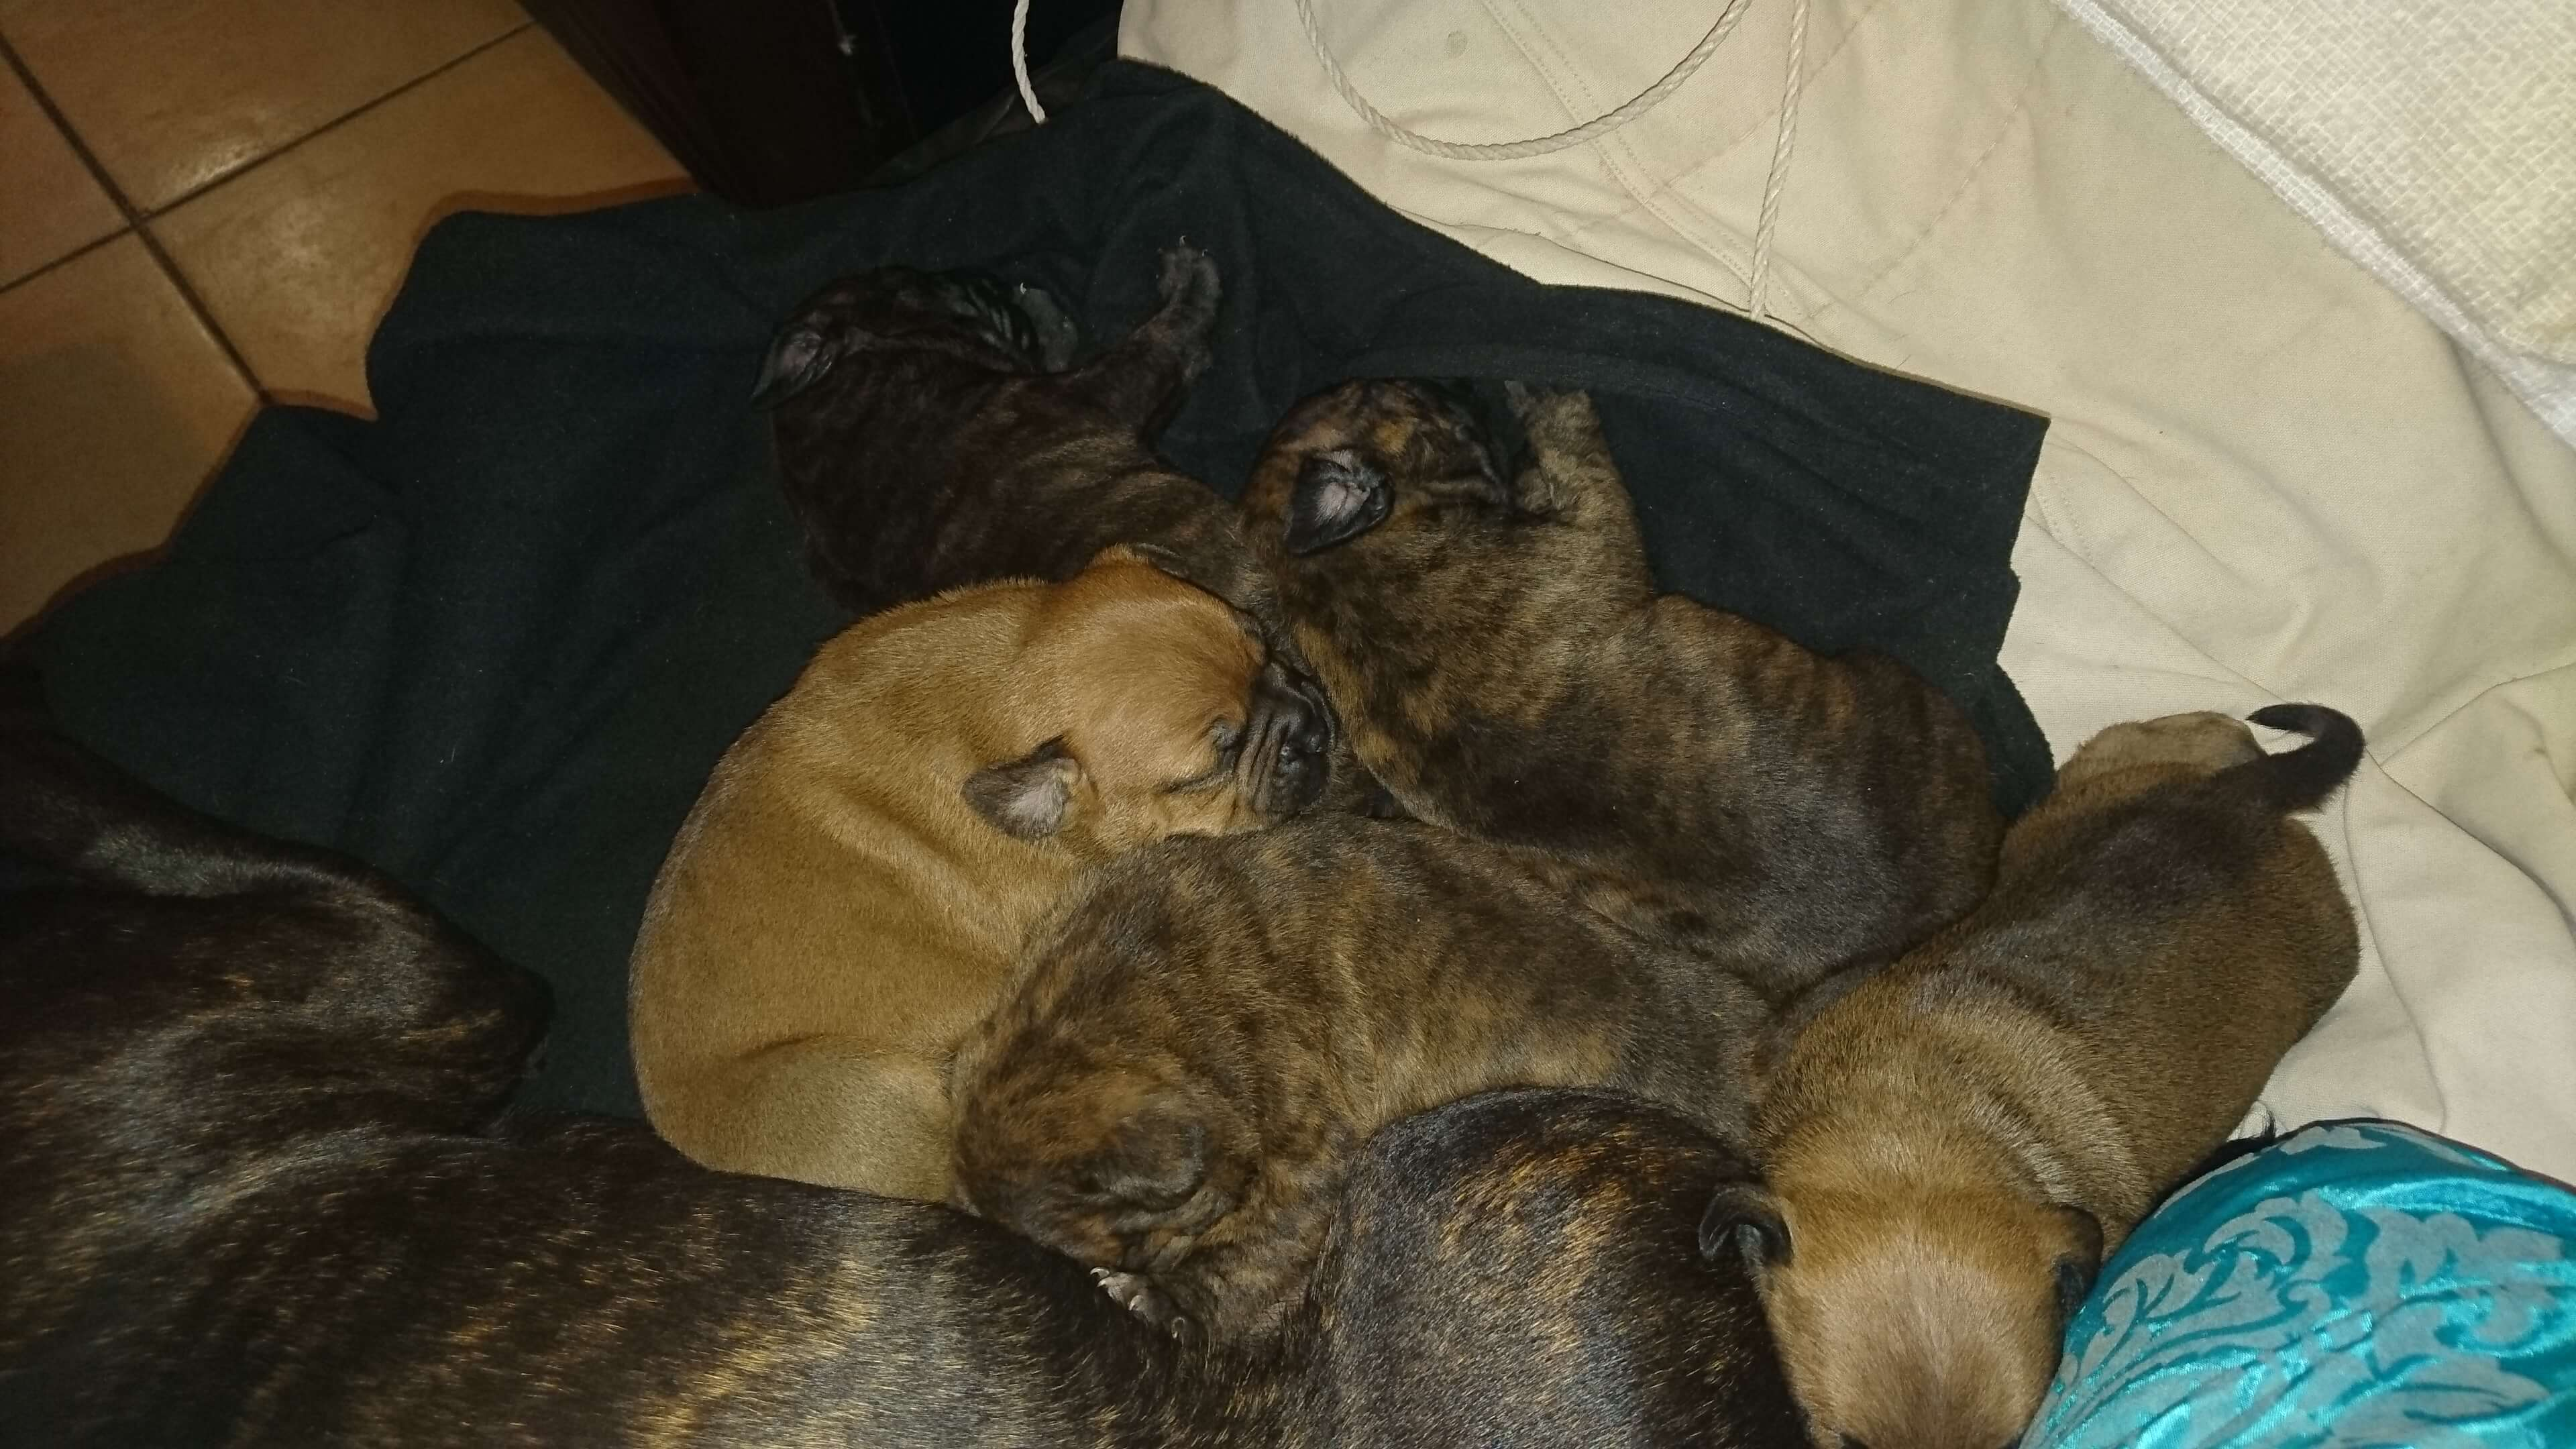 Staffie Puppies for Sale in Cape Town by Pierre Johnson